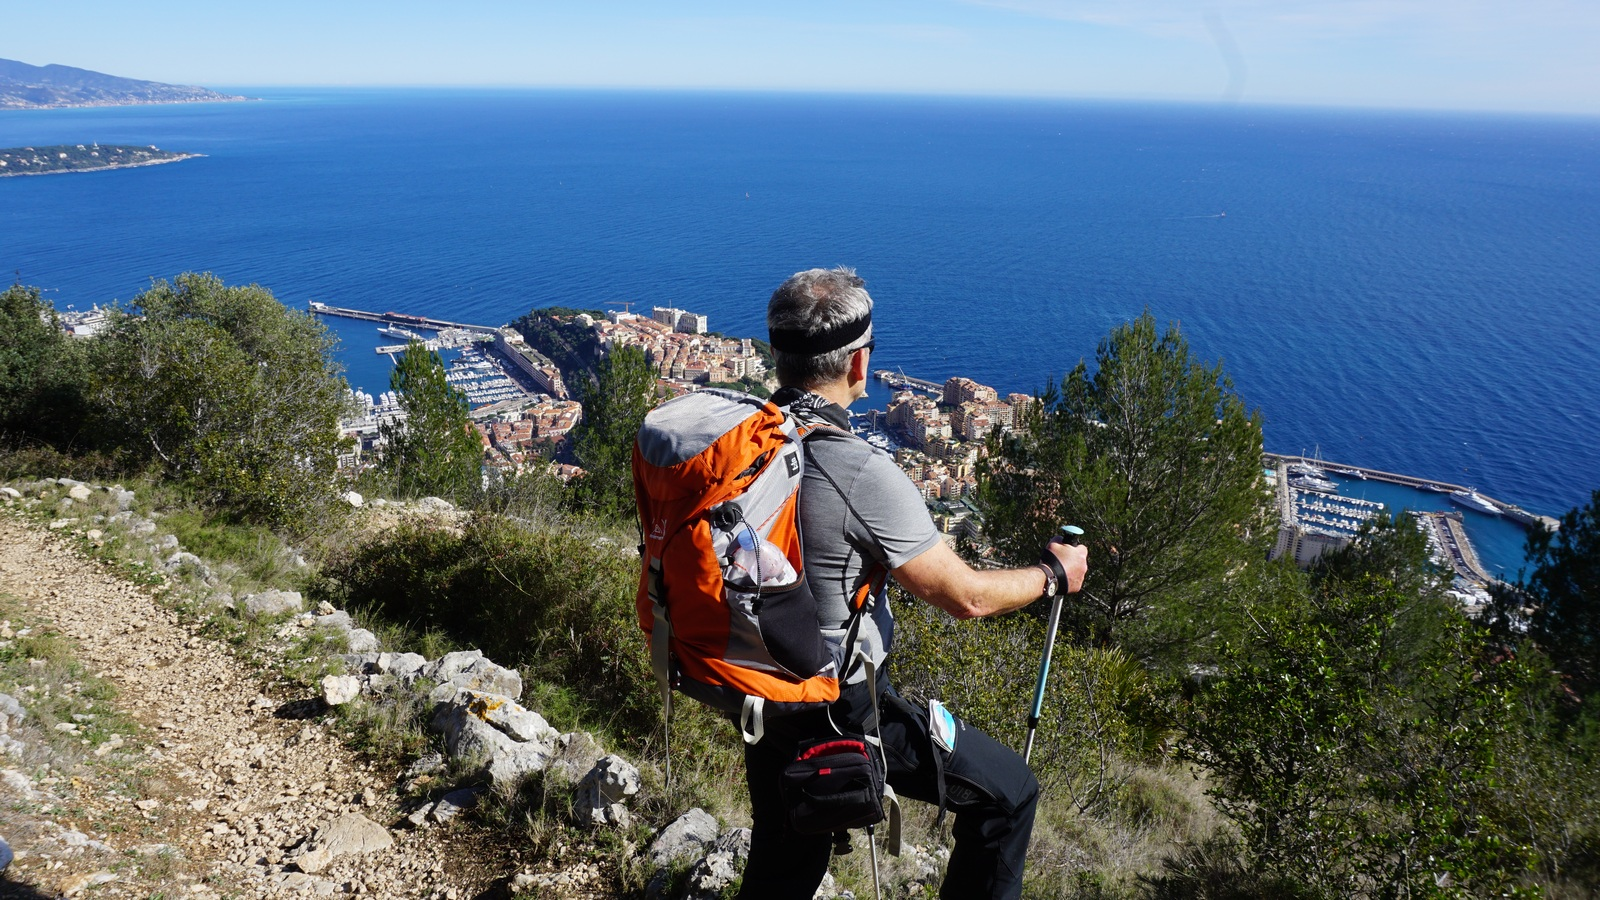 Admiring Monaco from the trail descending from Tete de Chien